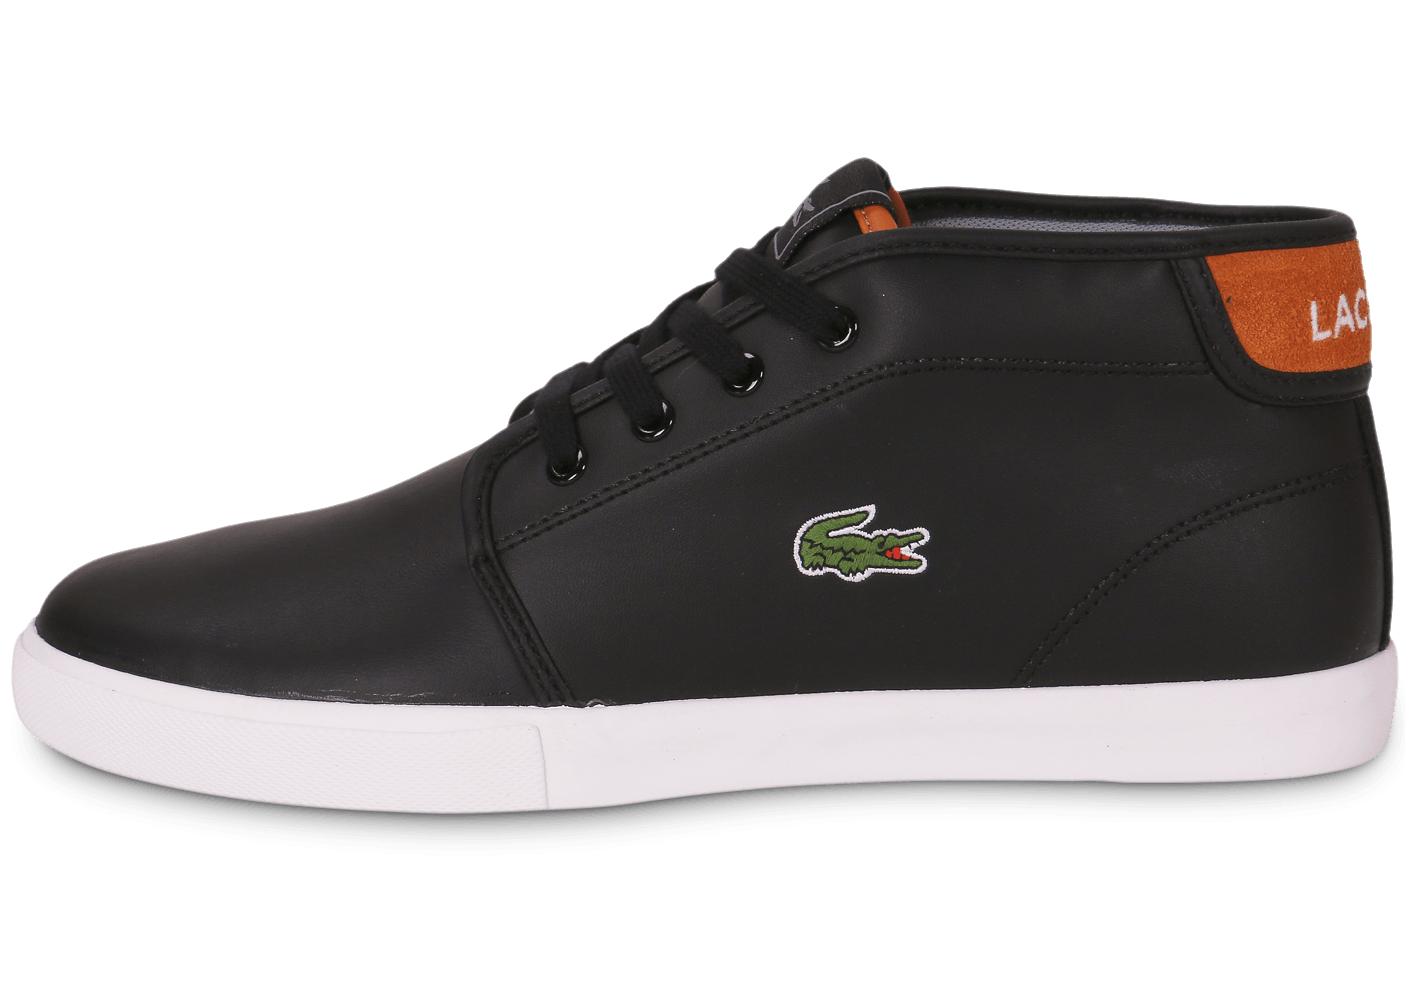 Lacoste Chaussure Femme Solde